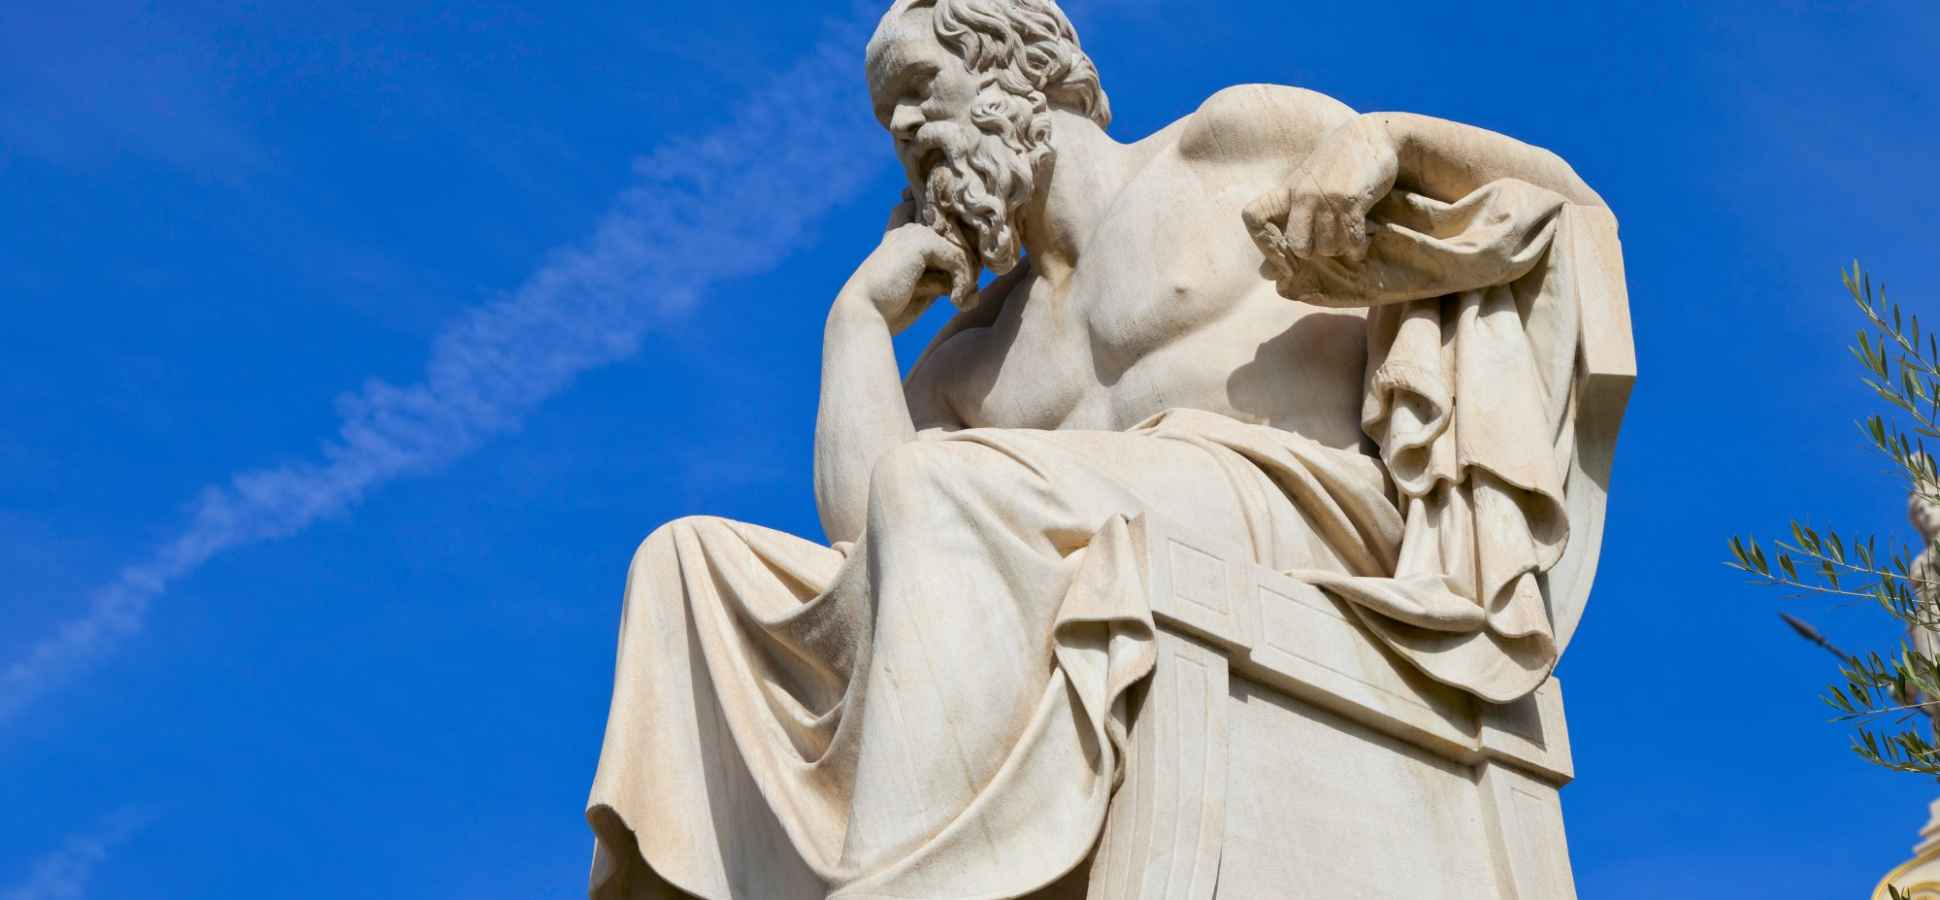 50 Quotes From Ancient Philosophers to Inspire You Past